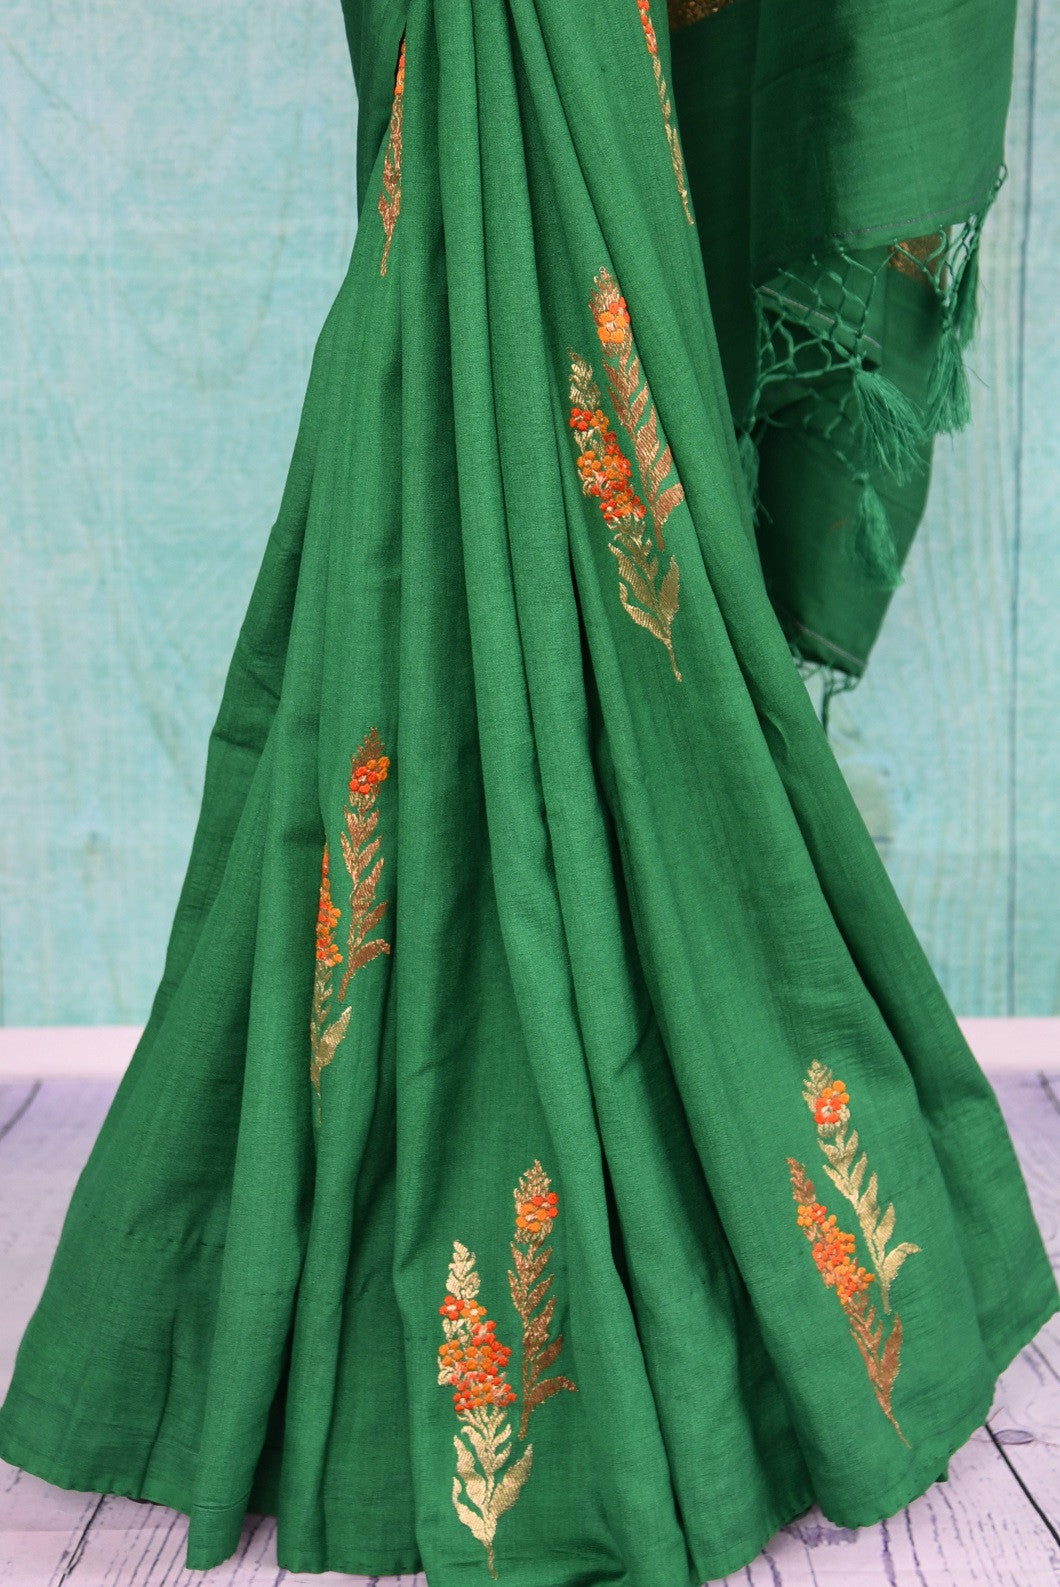 90D439 Elegant floral green sari that makes for a great ethnic outfit for parties and Indian weddings. Buy this evergreen tussar georgette banarasi saree online in USA at our store Pure Elegance.